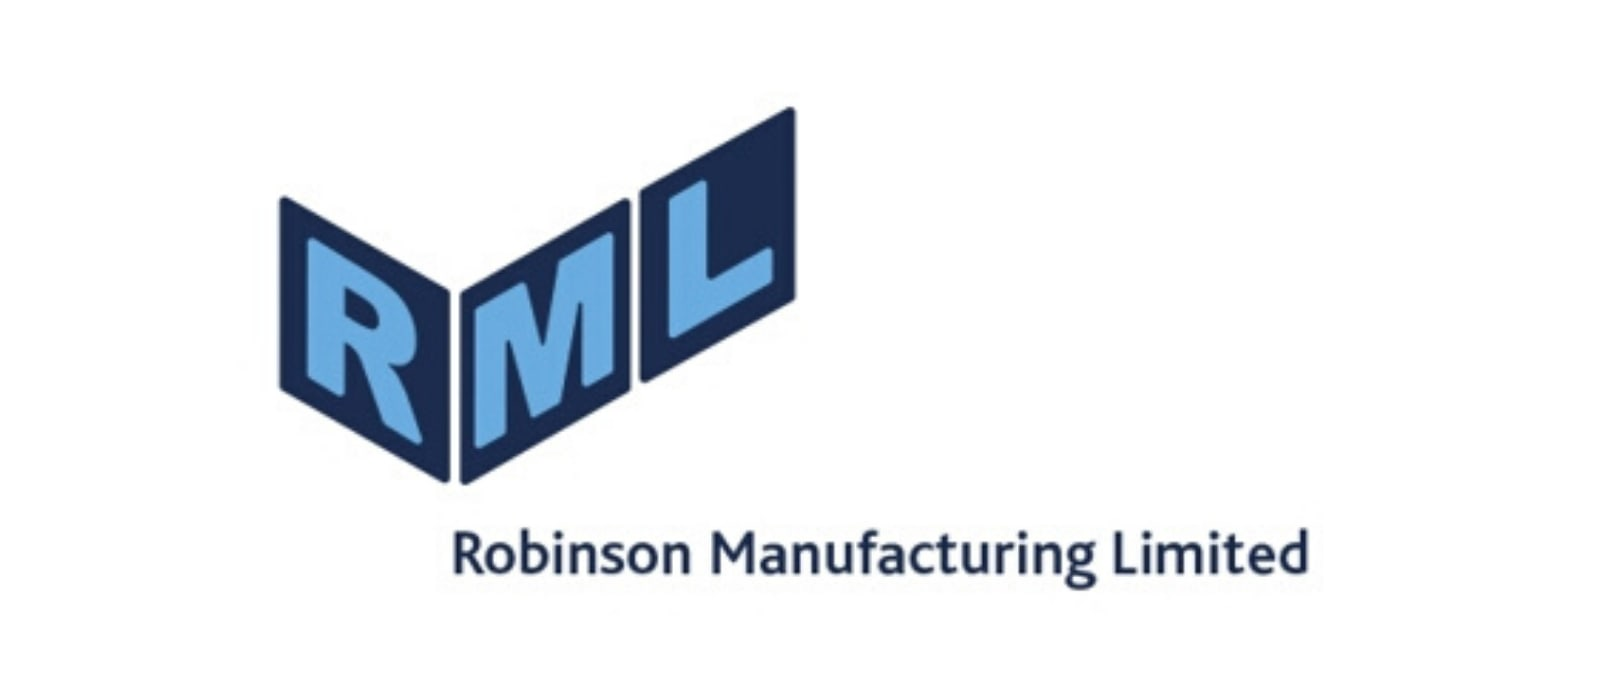 Robinson Manufacturing Ltd